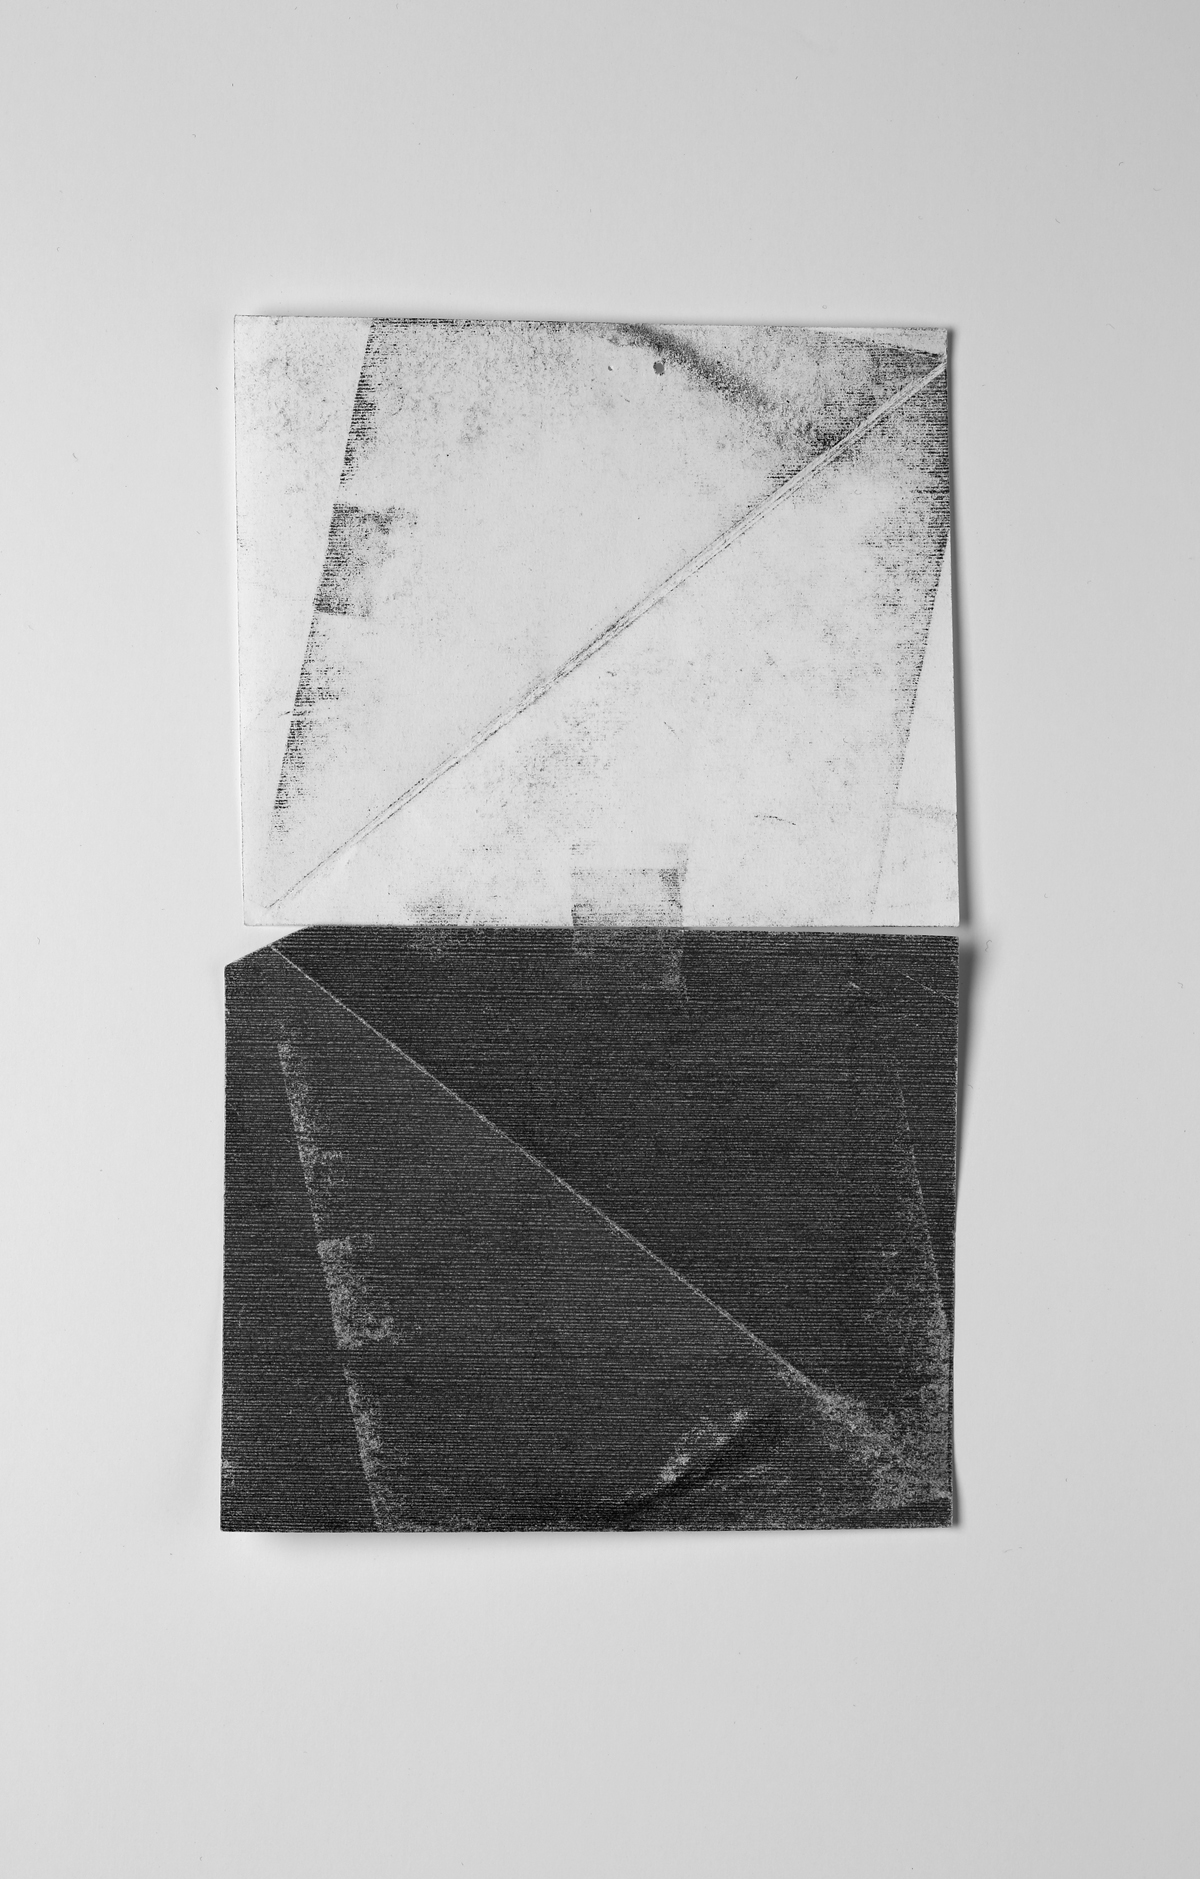 Untitled (test, from the ongoing series, Divided/Defined, Weights Measures and Emotional Geometry)   2013, pressed and folded transfer paper taped to regular bond paper, 11.5 x 9 inches